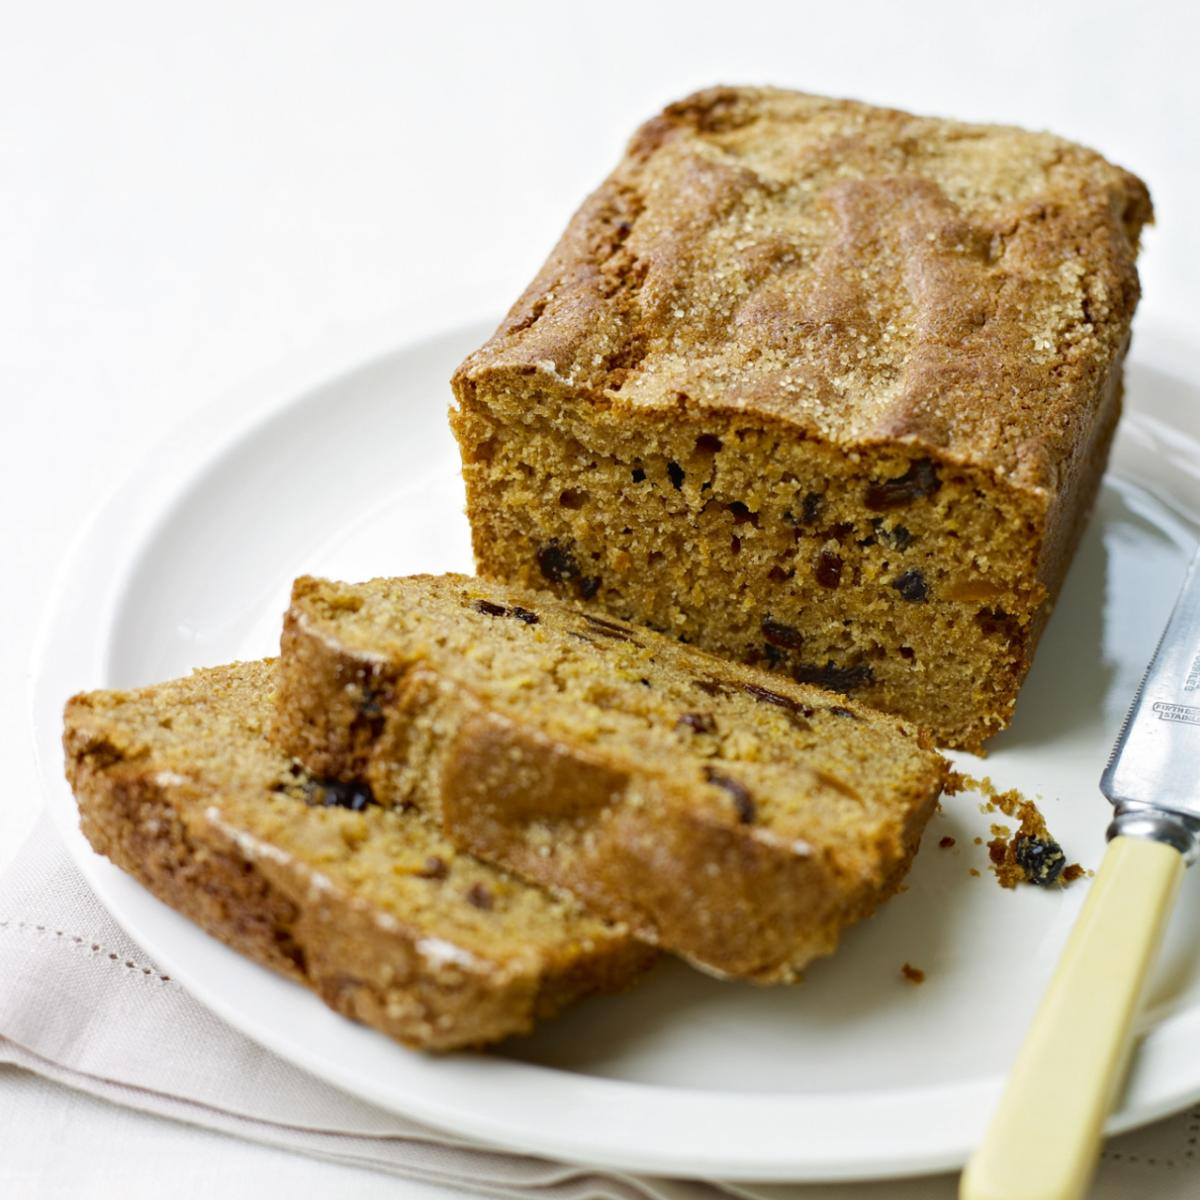 A picture of Delia's Marmalade Cake recipe